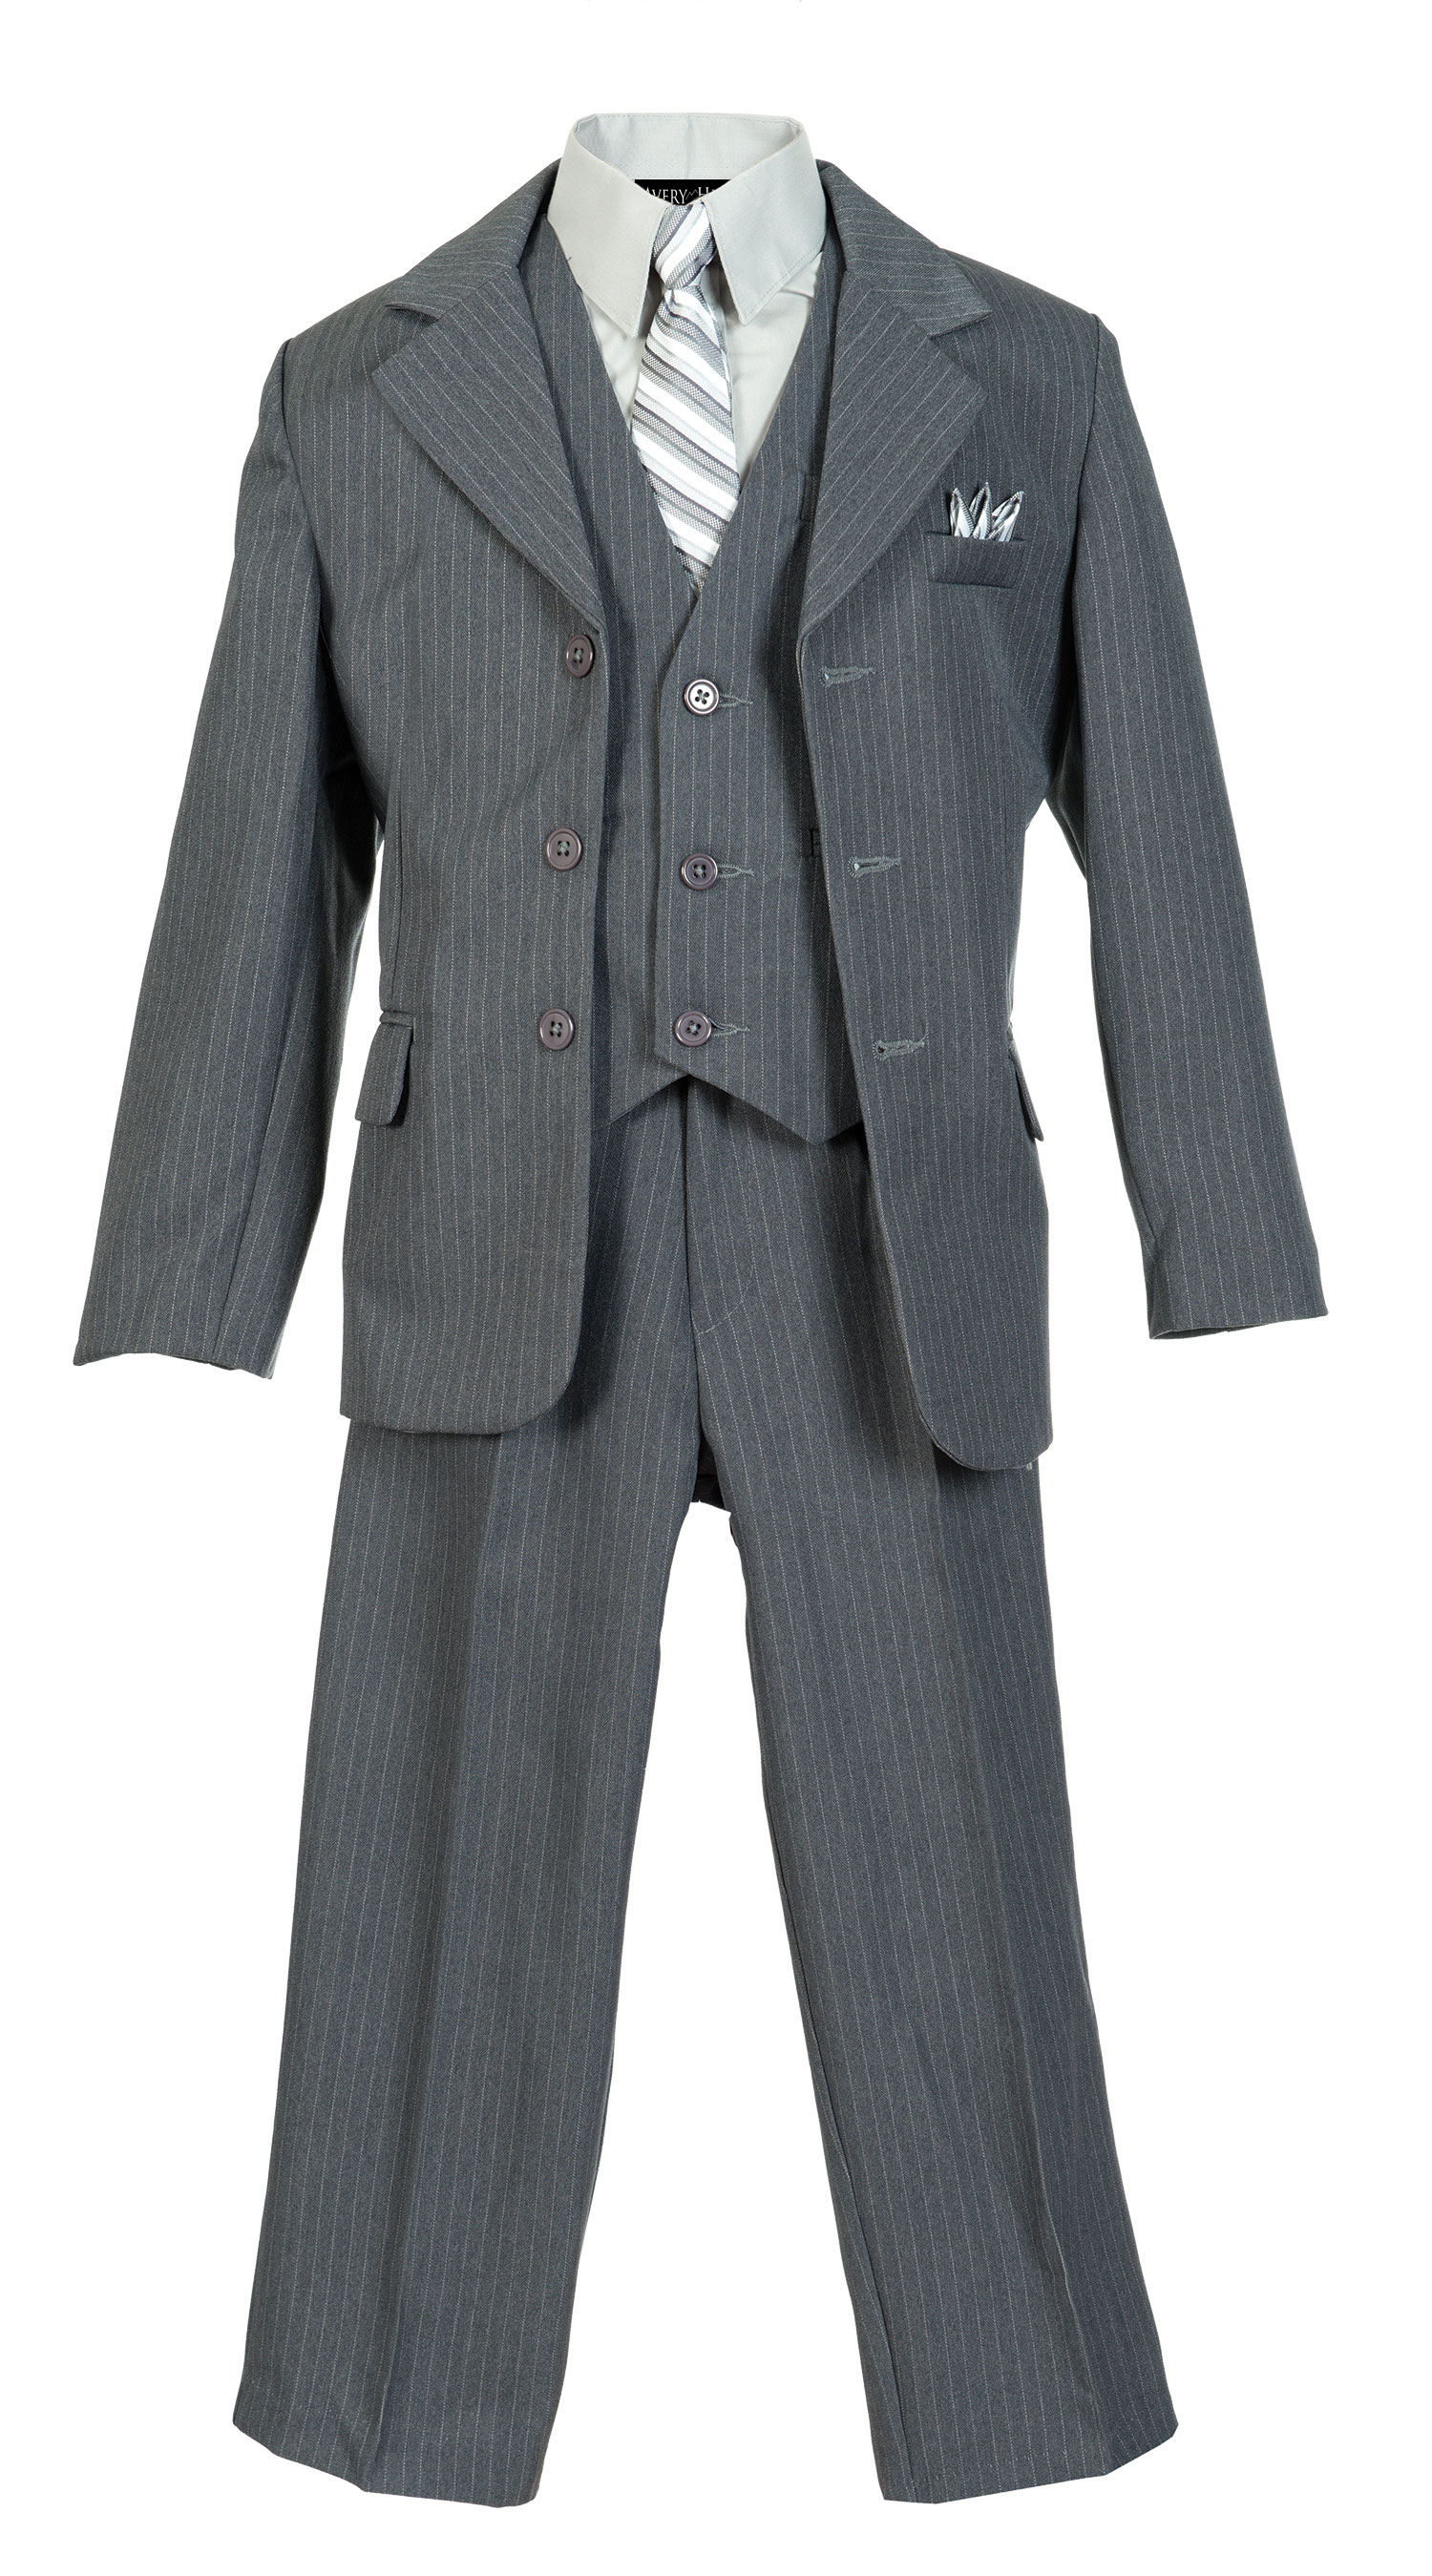 Toddler Boys (2T - 4T) Fabulous toddler or boys clothes including boys suits, tuxedos and dress clothes and Mud Pie Boys Clothes. Results none found. Display: Infant Or Toddler Boys Eton Suit - Sage Green Boys White Tie - 13 inch long - Perfect for Communion Boys Tuxedo.